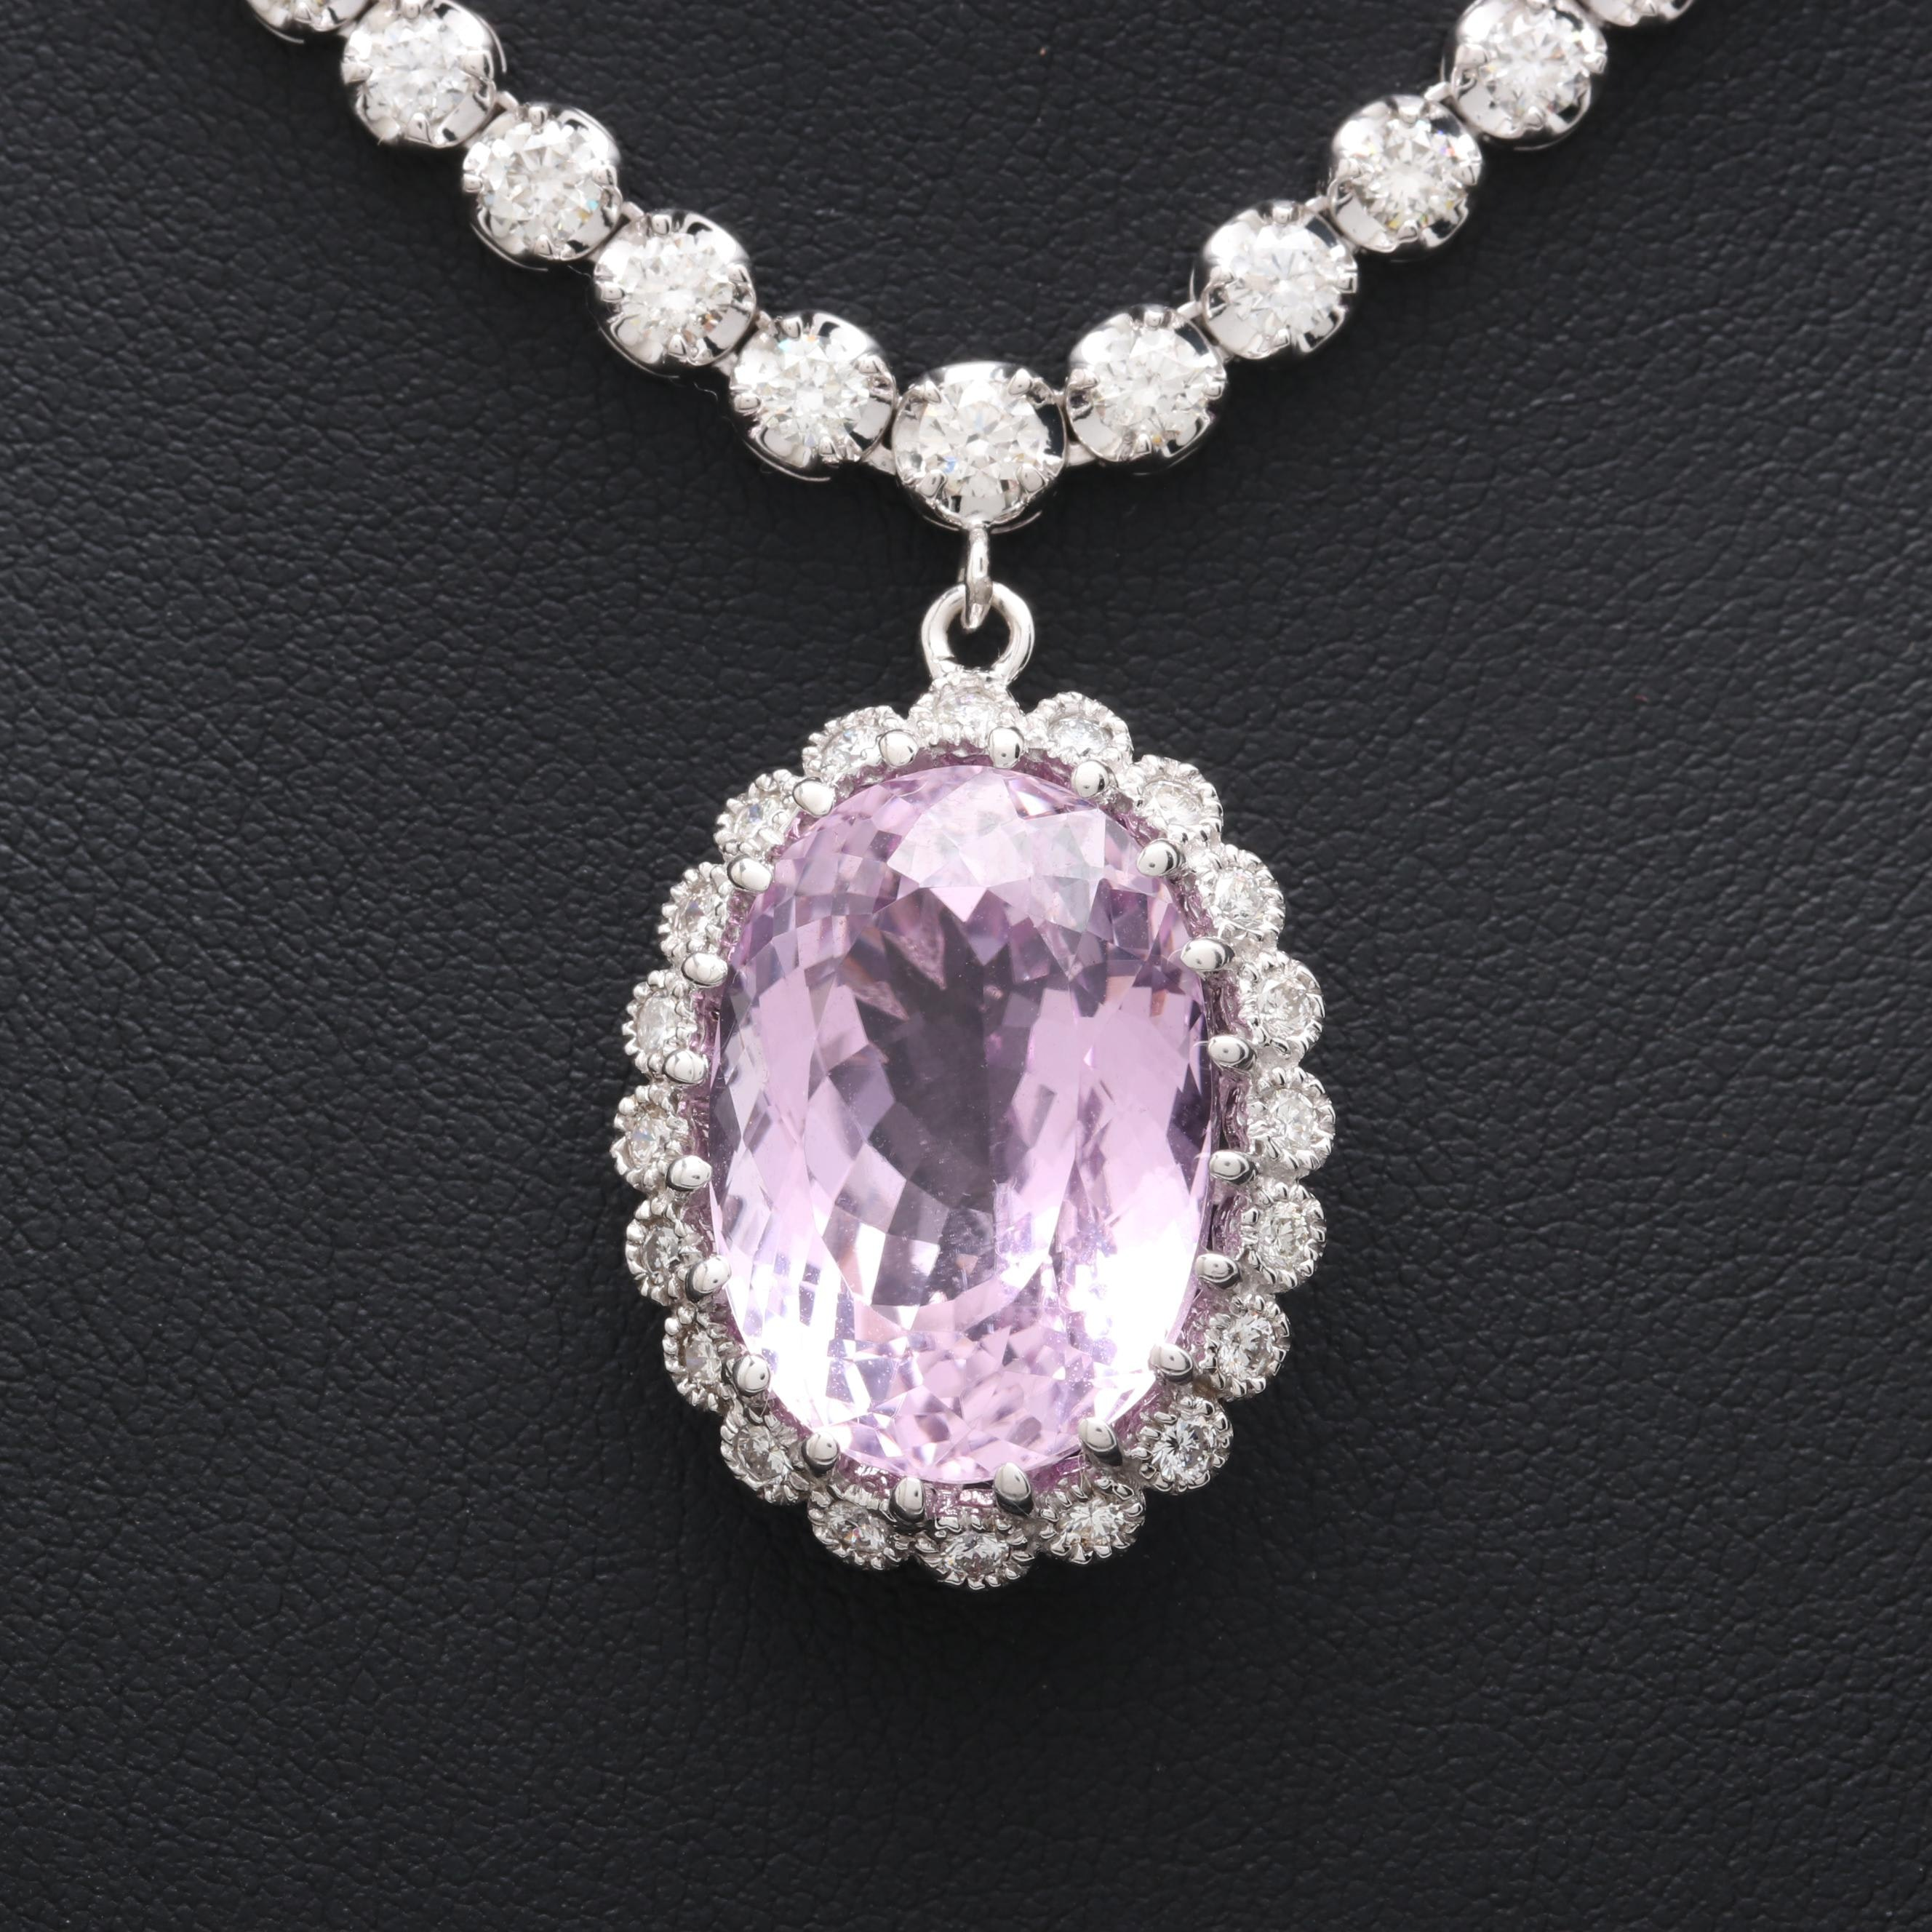 14K White Gold 16.41 CT Kunzite and 3.10 CTW Diamond Necklace